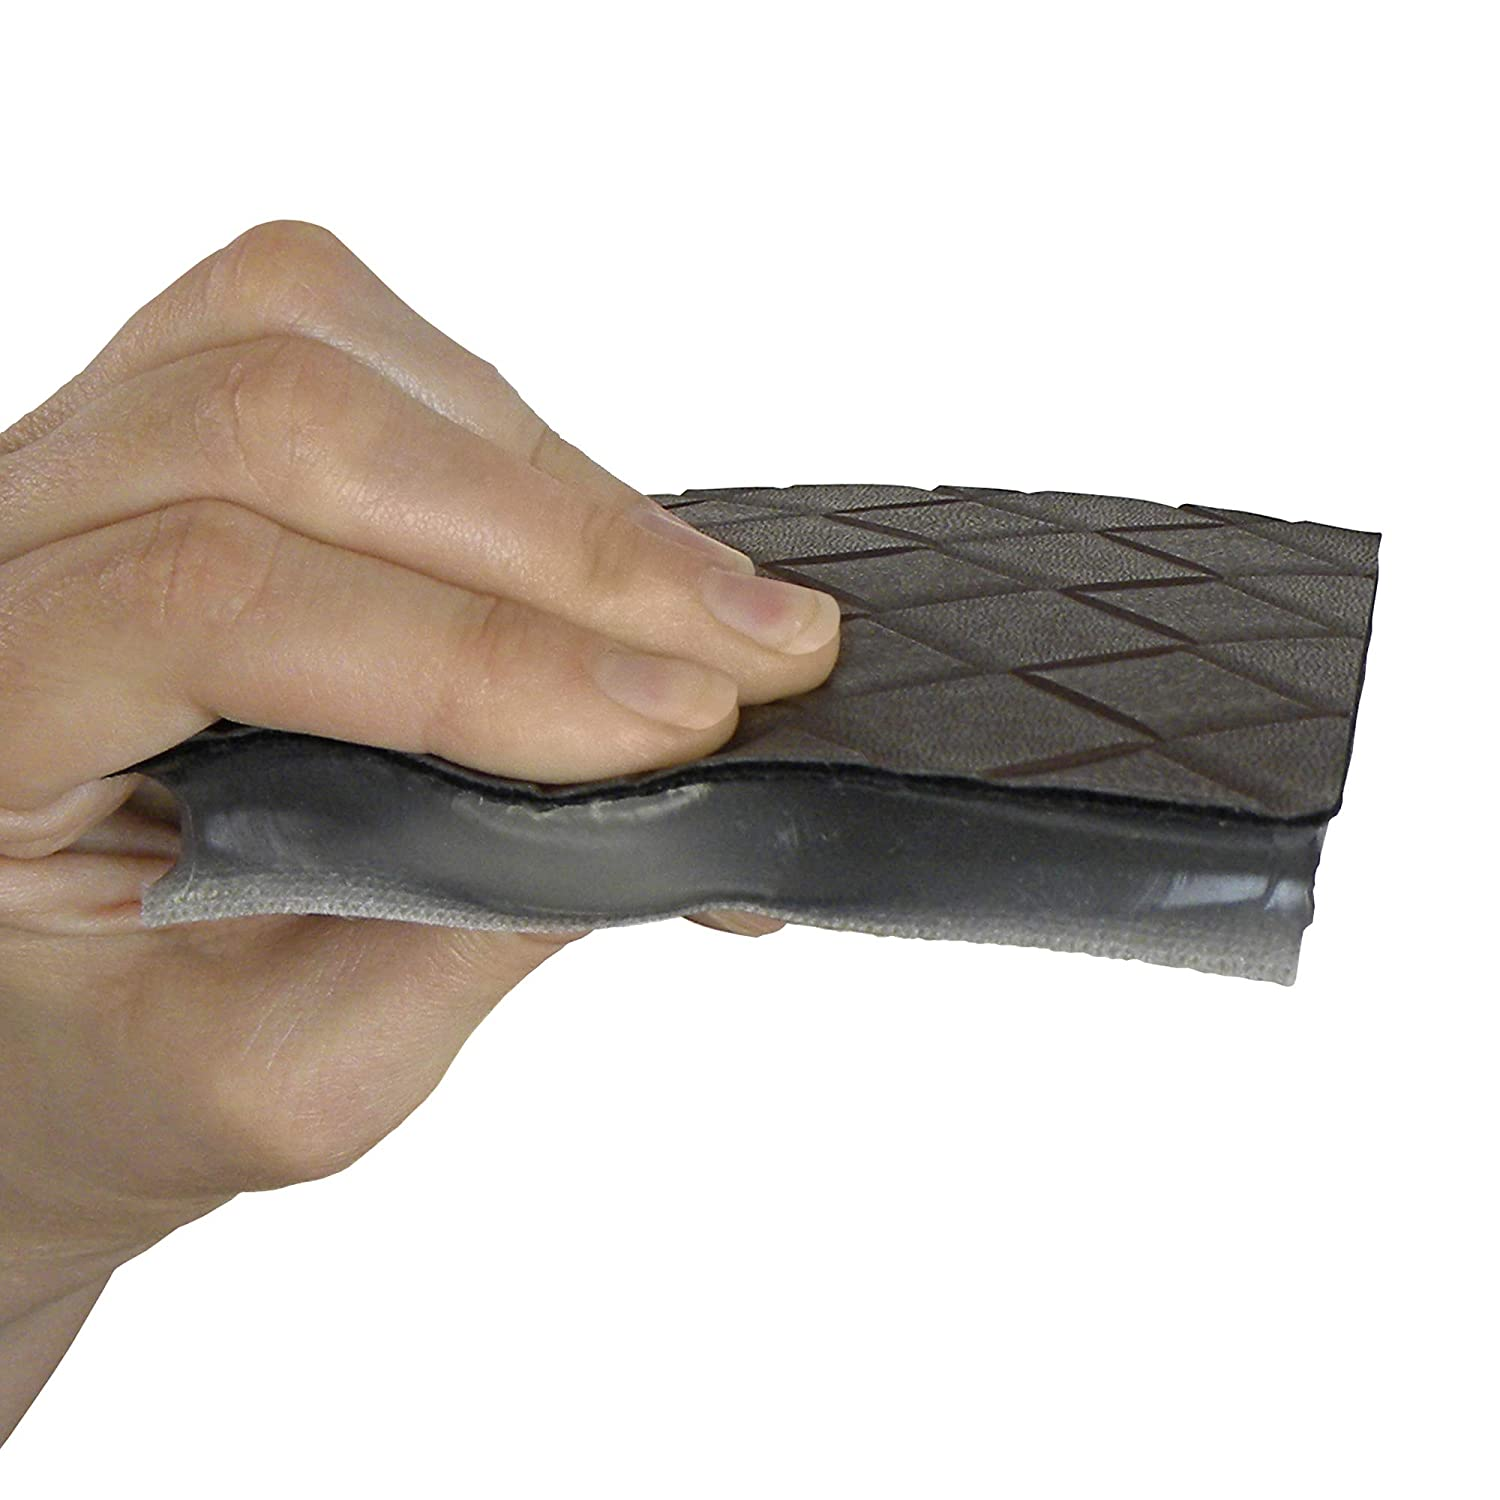 GelPro Classic Anti-fatigue Mat